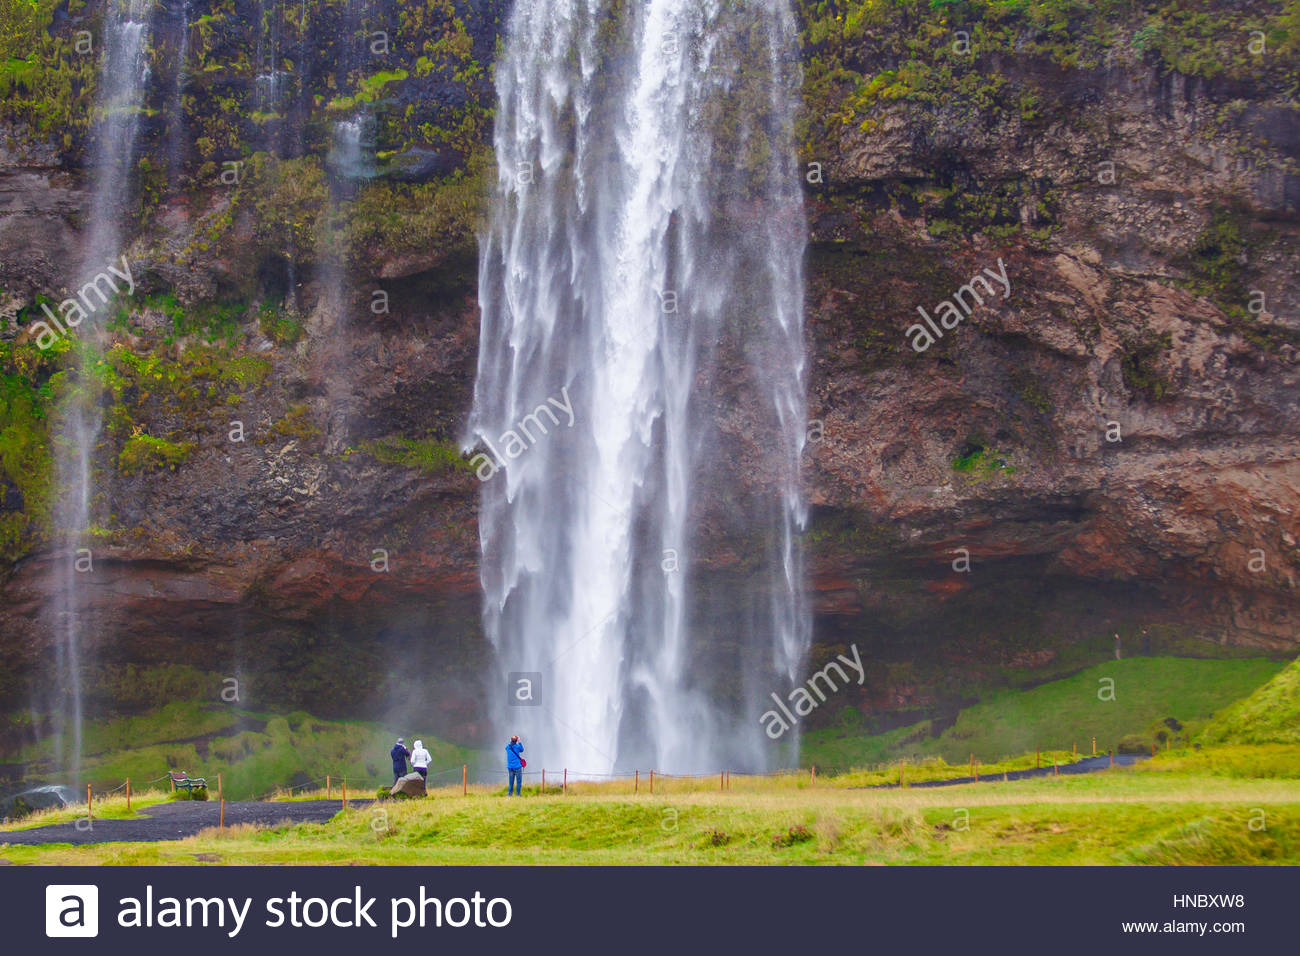 Tourists at the scenic and popular Seljalandsfoss Waterfalls. - Stock Image